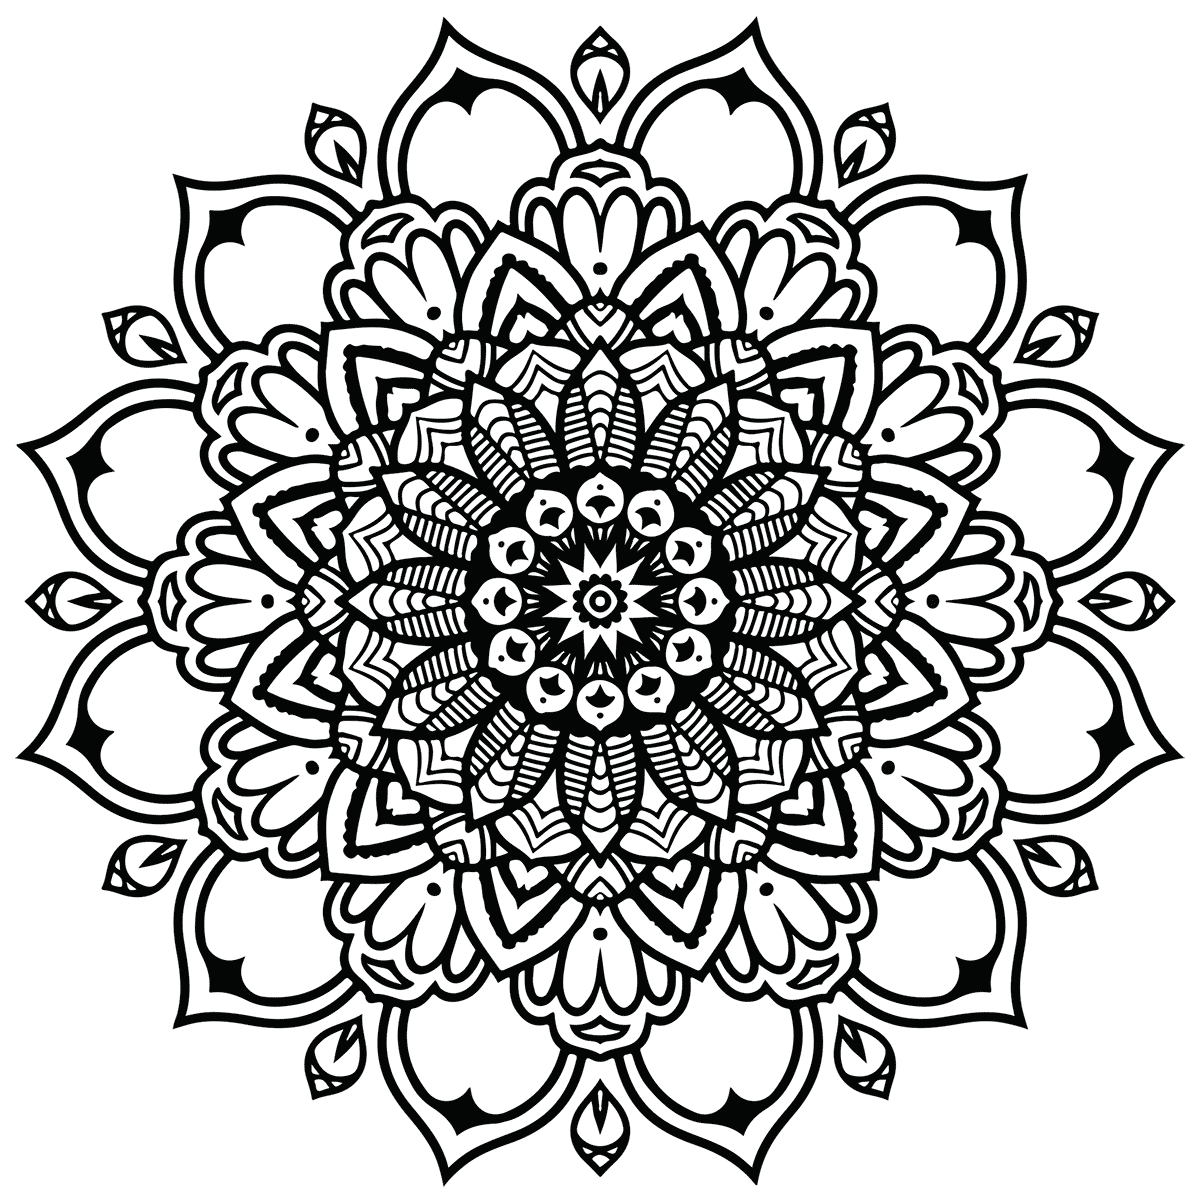 mandala coloring book pages cute floral mandala simple mandalas 100 mandalas zen mandala coloring book pages